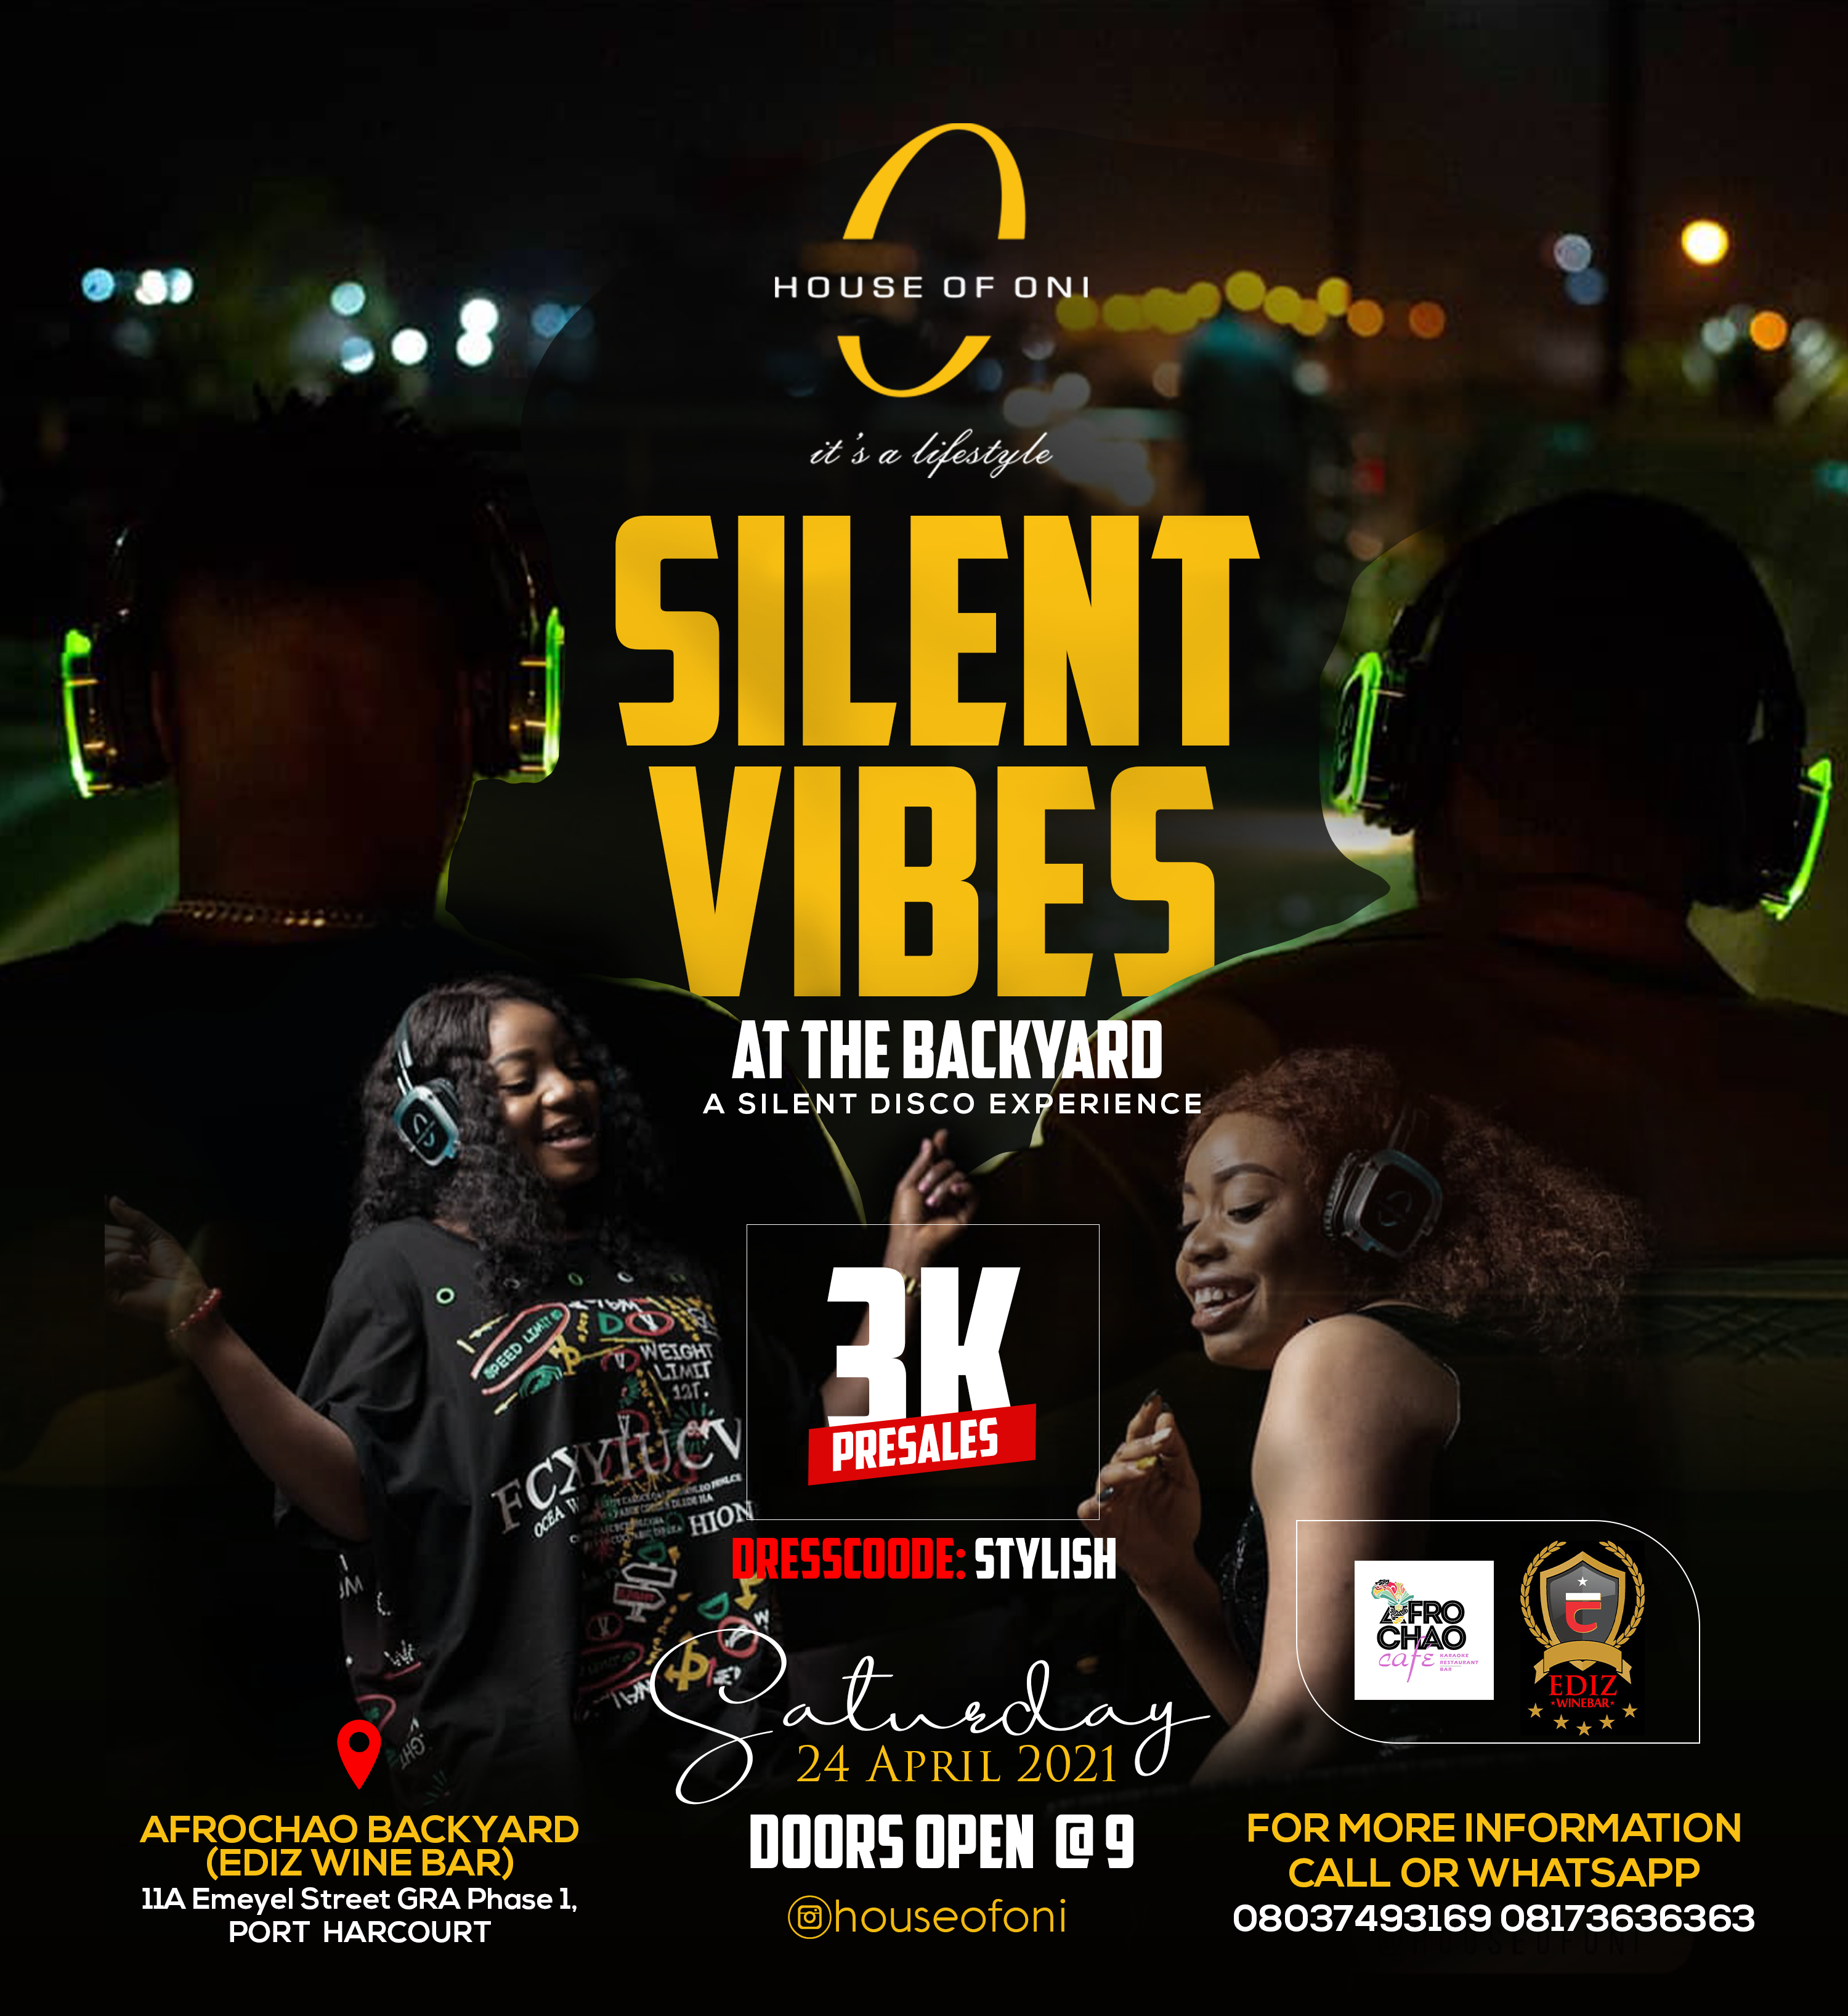 Silent Vibes – A Silent Disco Experience at the Backyard in PH